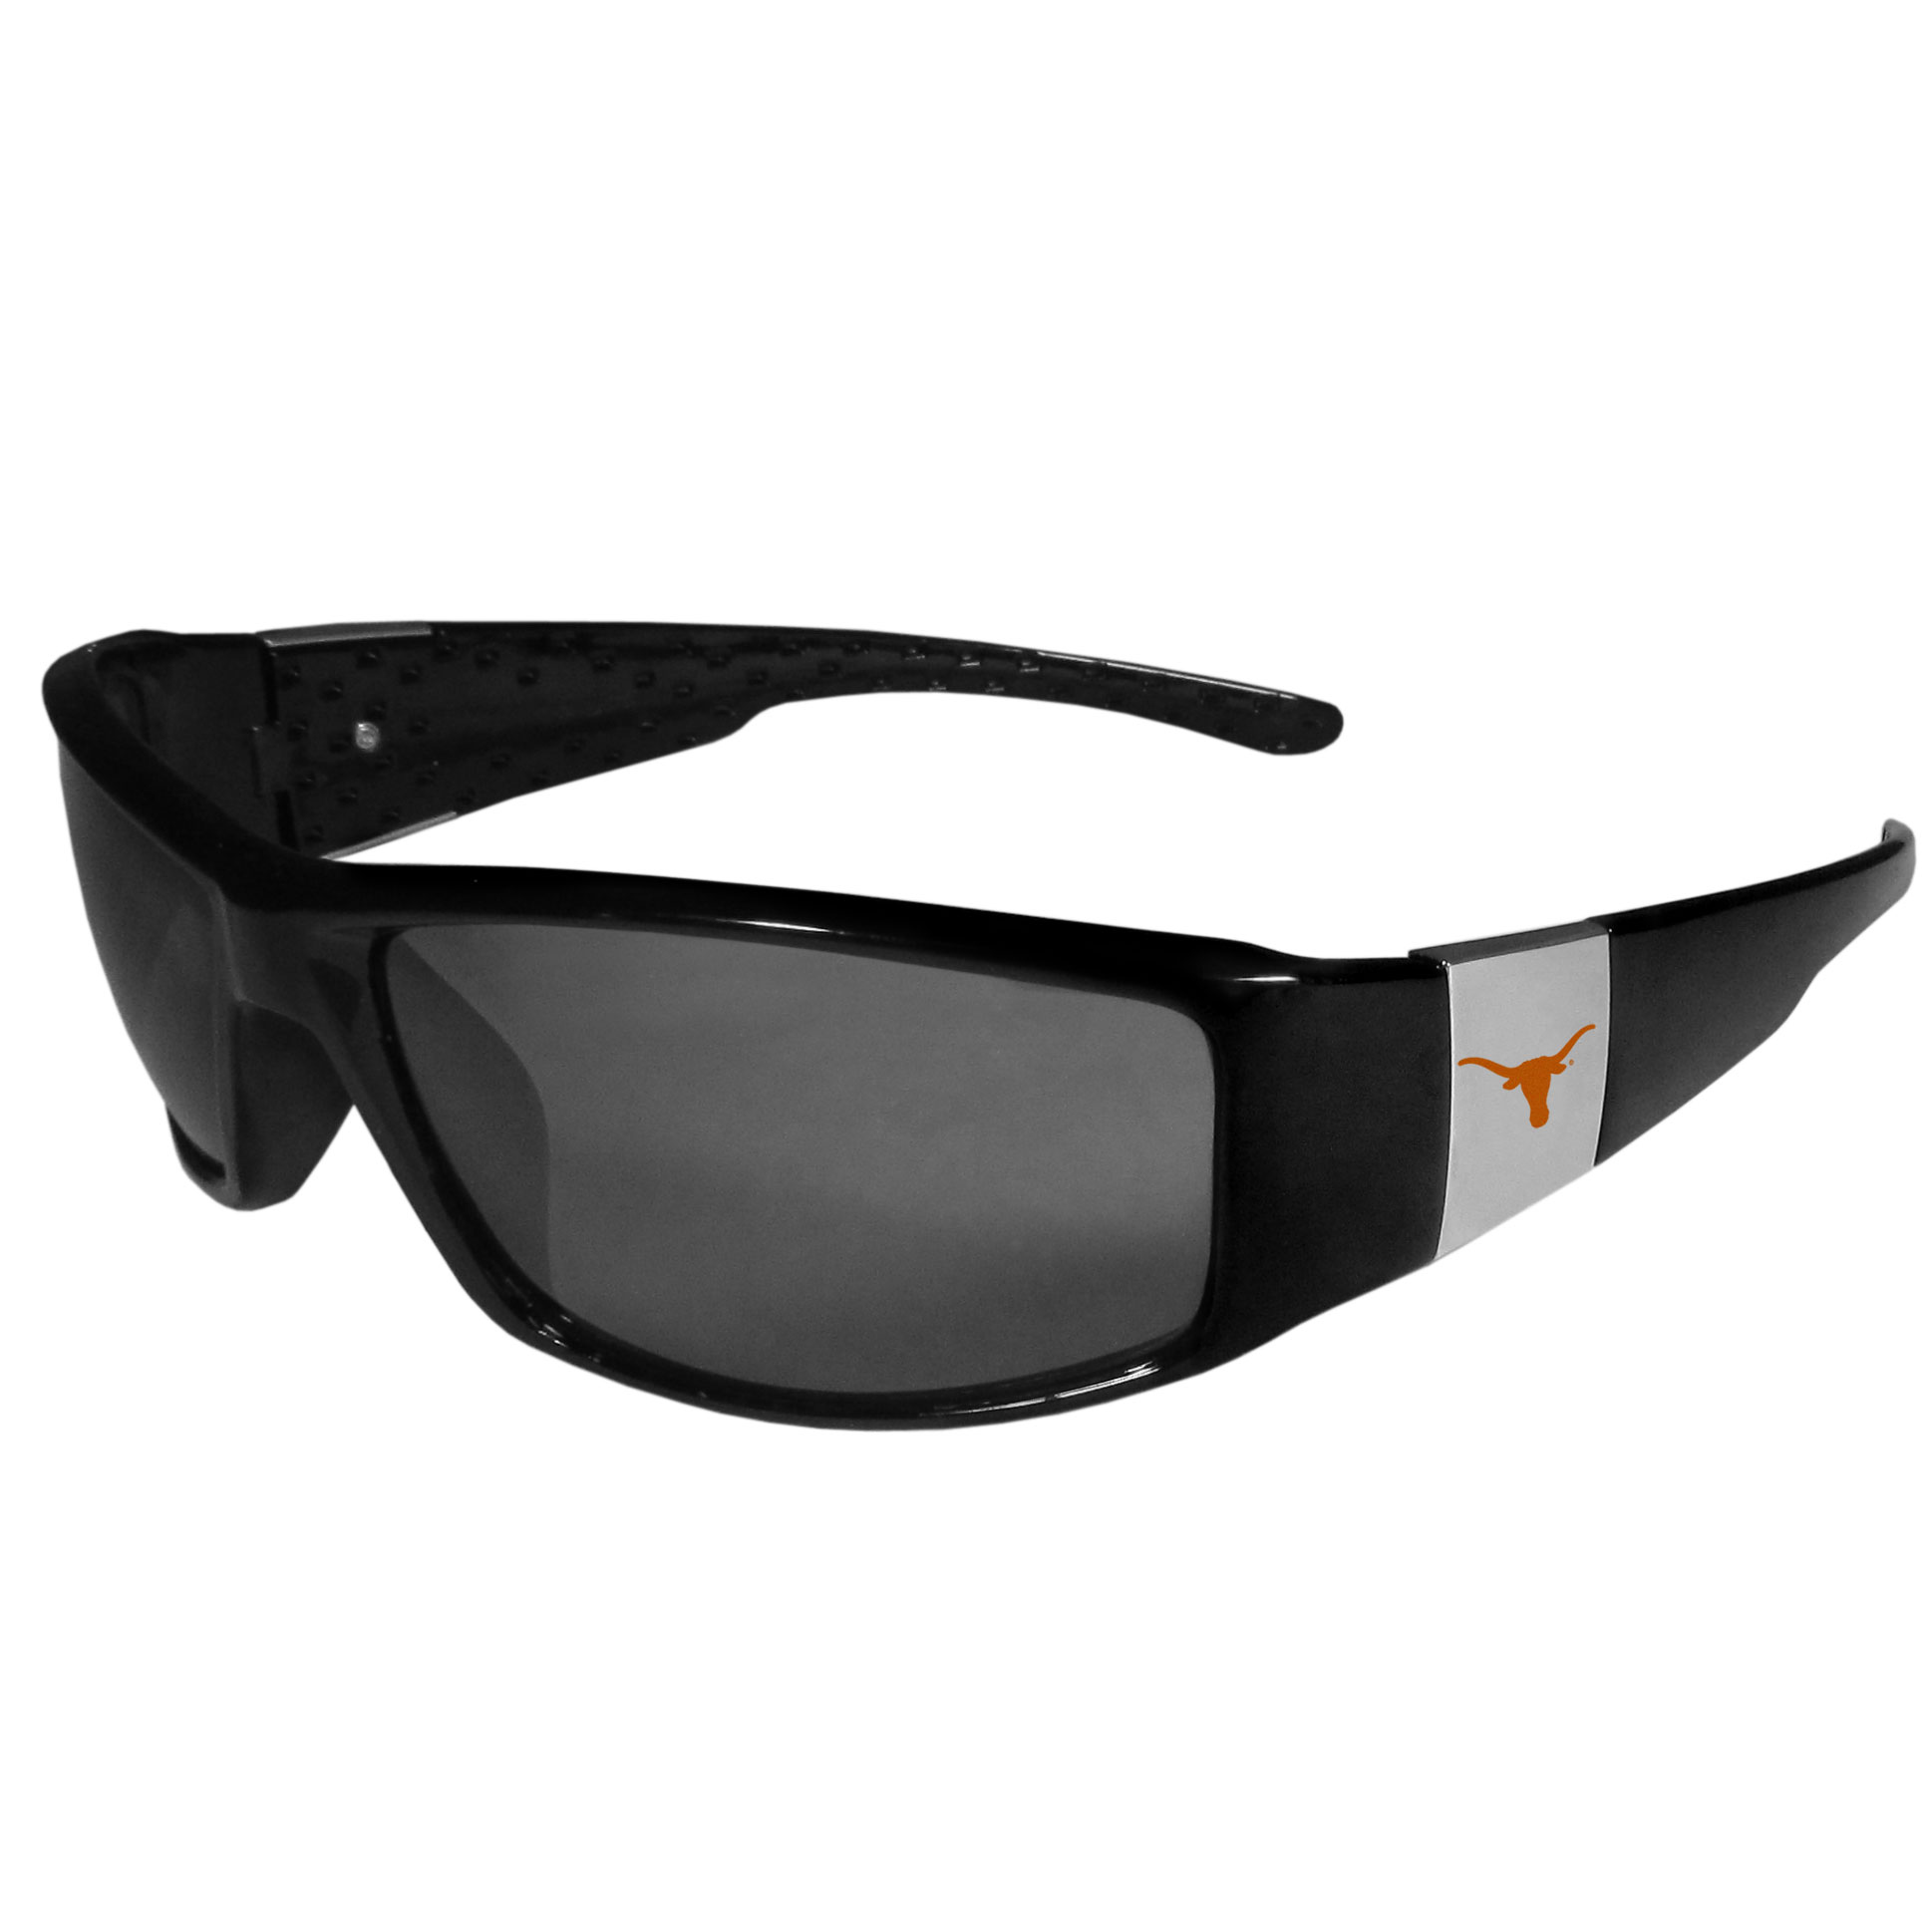 Texas Longhorns Chrome Wrap Sunglasses - These designer inspired frames have a sleek look in all black with high-polish chrome Texas Longhorns shields on each arm with a printed logo. The shades are perfect for any outdoor activity like; golfing, driving, hiking, fishing or cheering on the team at a tailgating event or at a home game day BBQ with a lens rating of 100% UVA/UVB for maximum UV protection. The high-quality frames are as durable as they are fashionable and with their classic look they are the perfect fan accessory that can be worn everyday for every occasion.